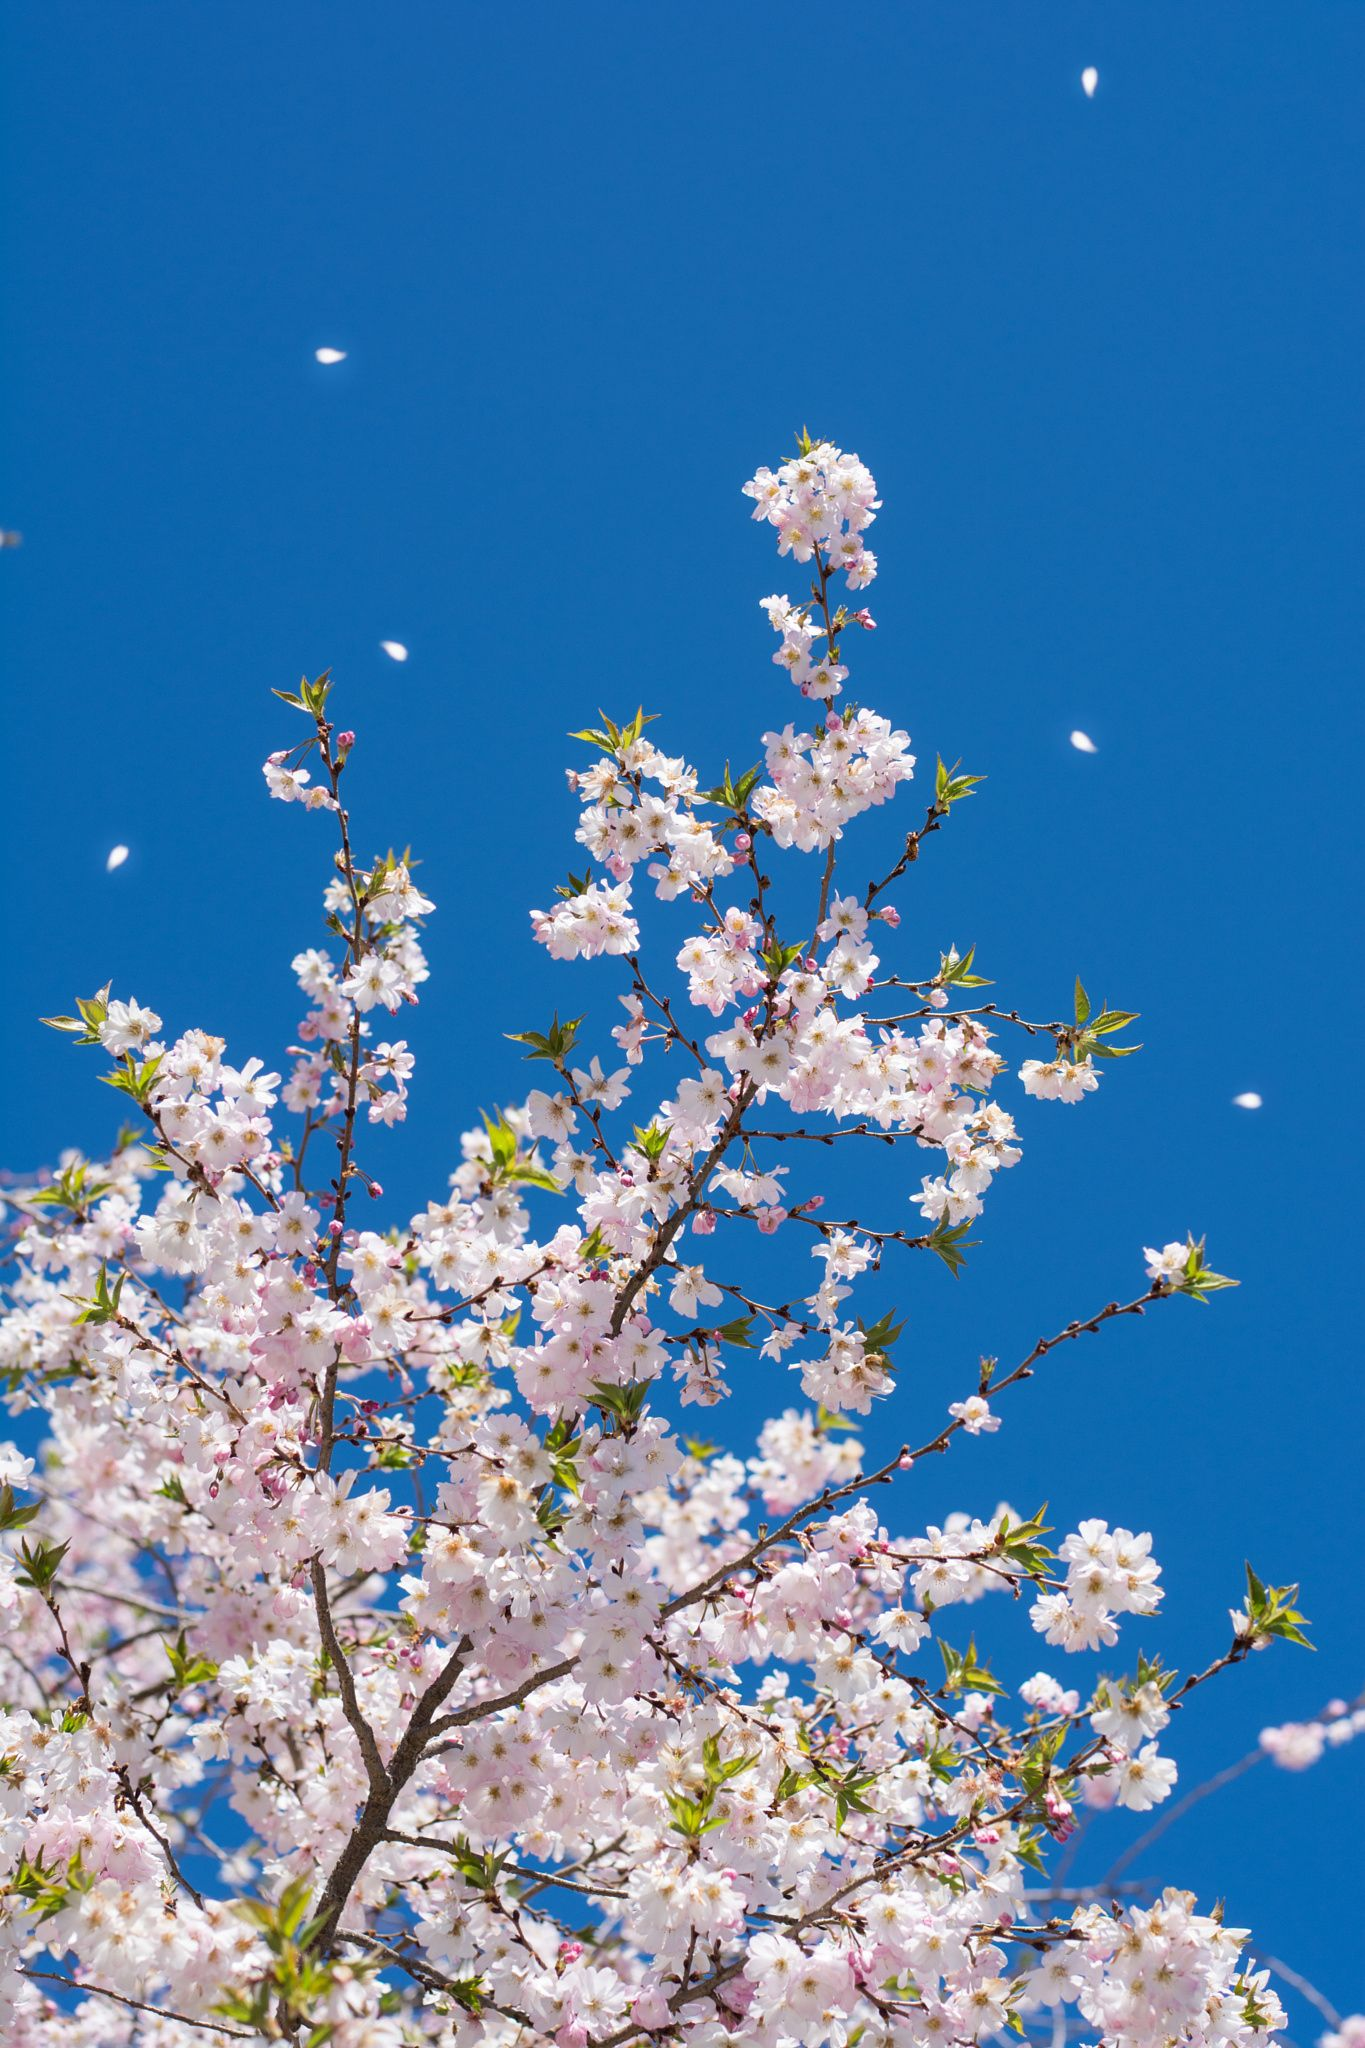 Scent Of Spring Blooming Cherry Blossom Cherry Blossom Wallpaper Vintage Flowers Wallpaper Spring Wallpaper